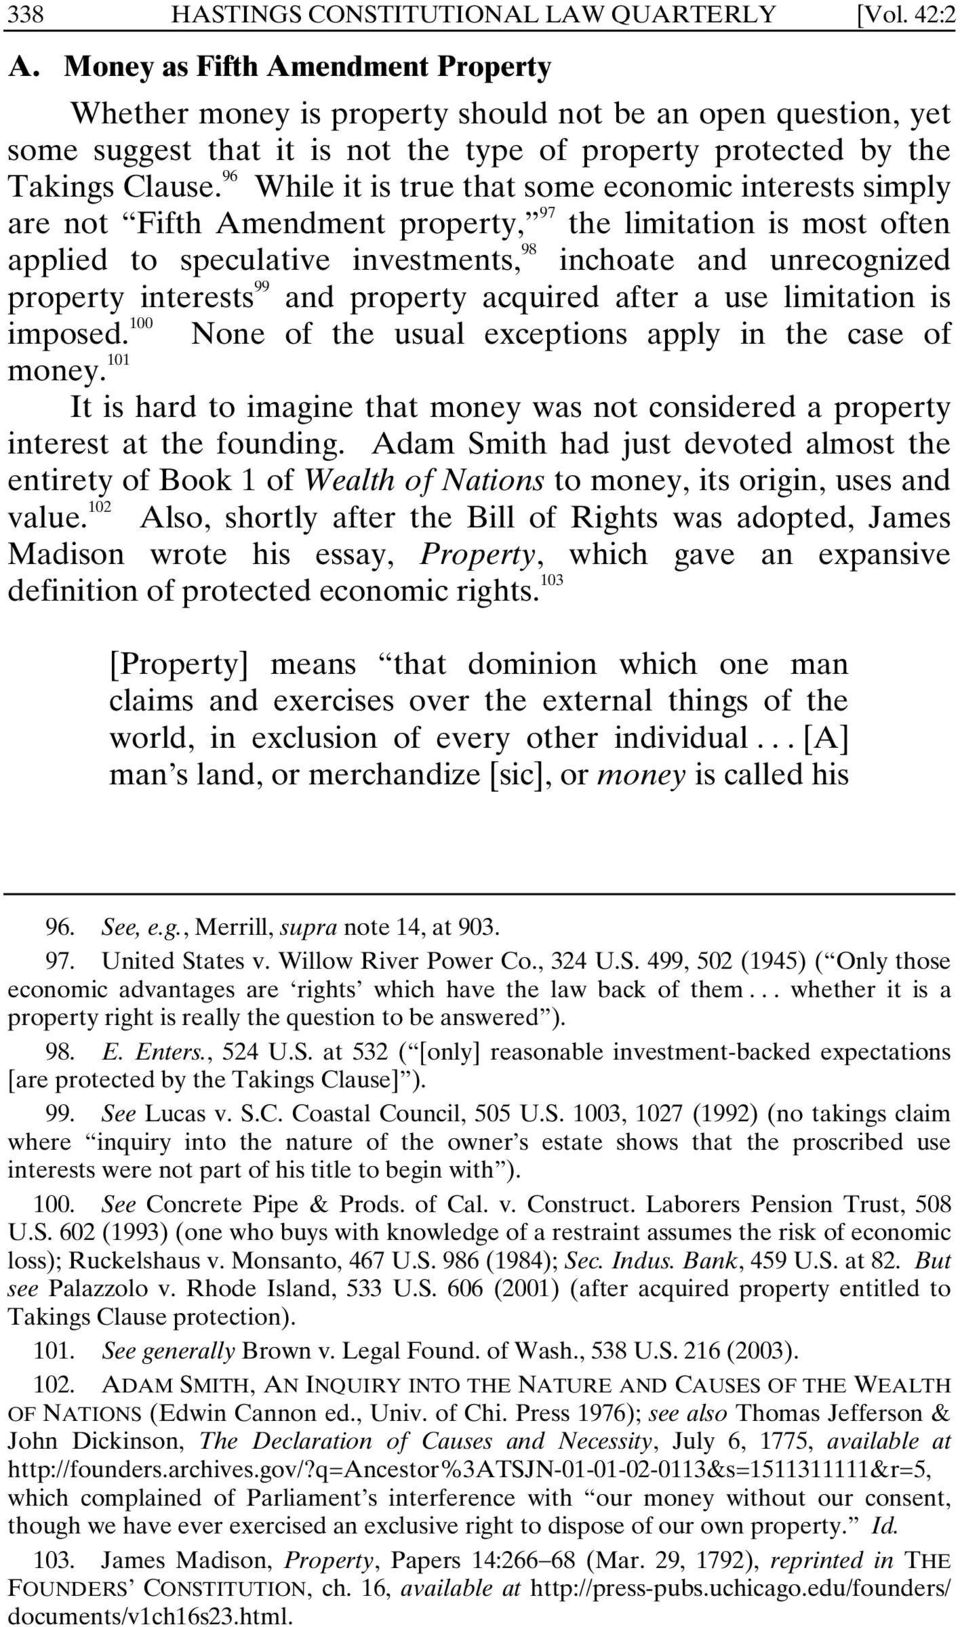 96 While it is true that some economic interests simply are not Fifth Amendment property, 97 the limitation is most often applied to speculative investments, 98 inchoate and unrecognized property